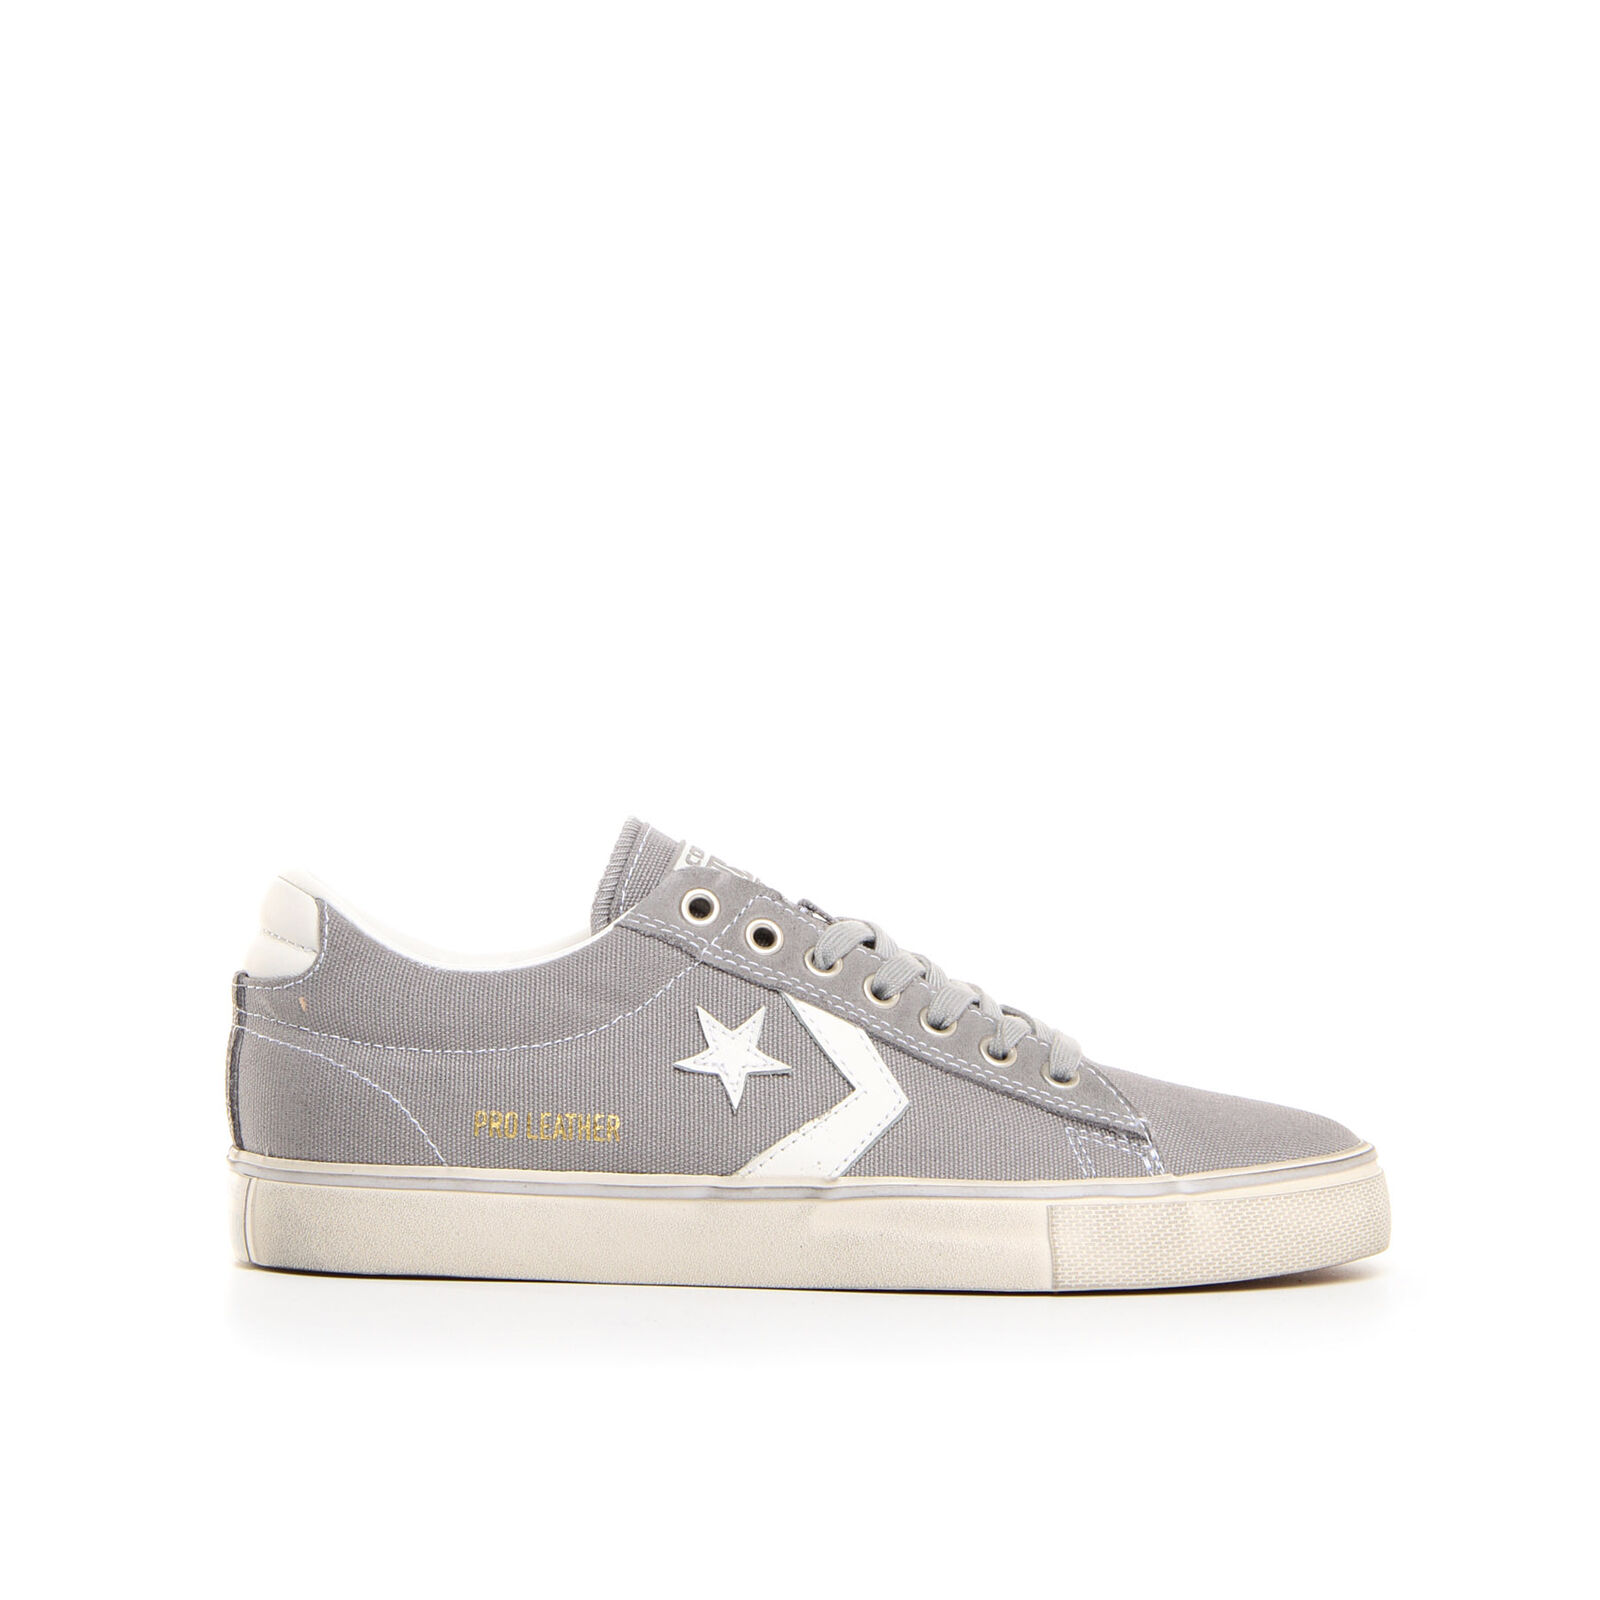 CONVERSE PRO LEATHER VULC DISTRESS schuhe FREE TIME UNISEX 160981C